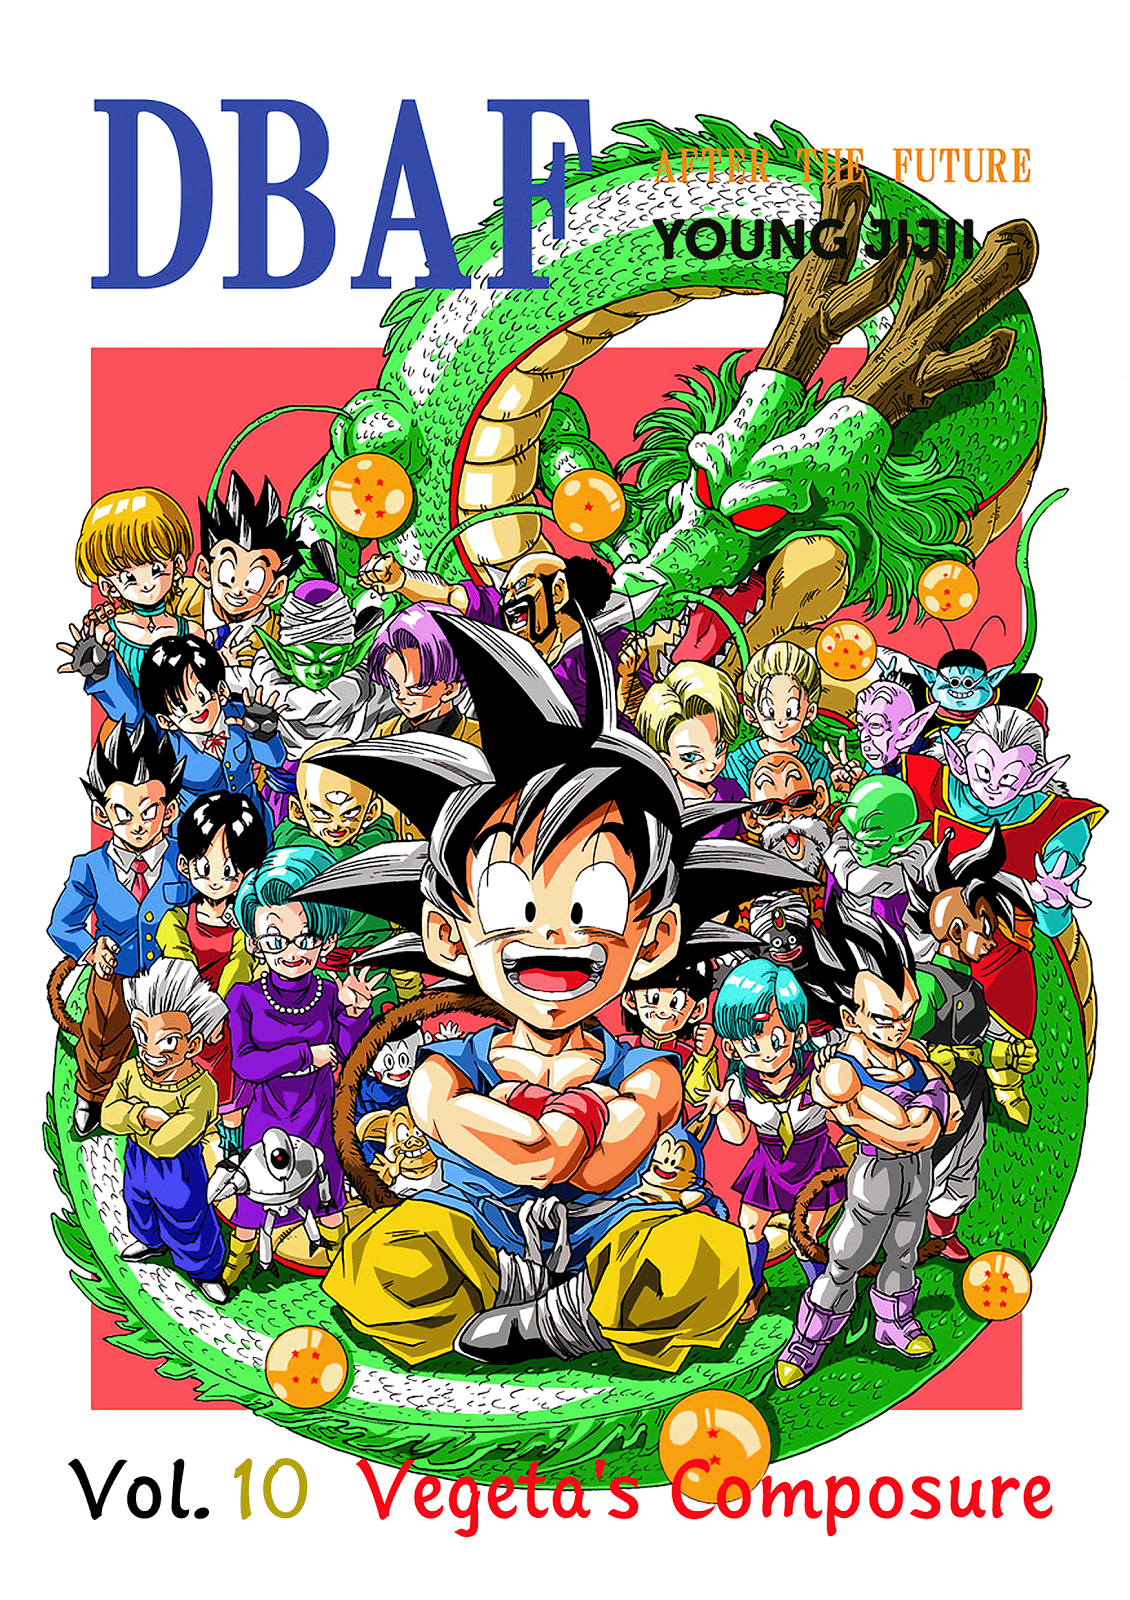 Young Jijii's Dragon Ball AF Vol. 10